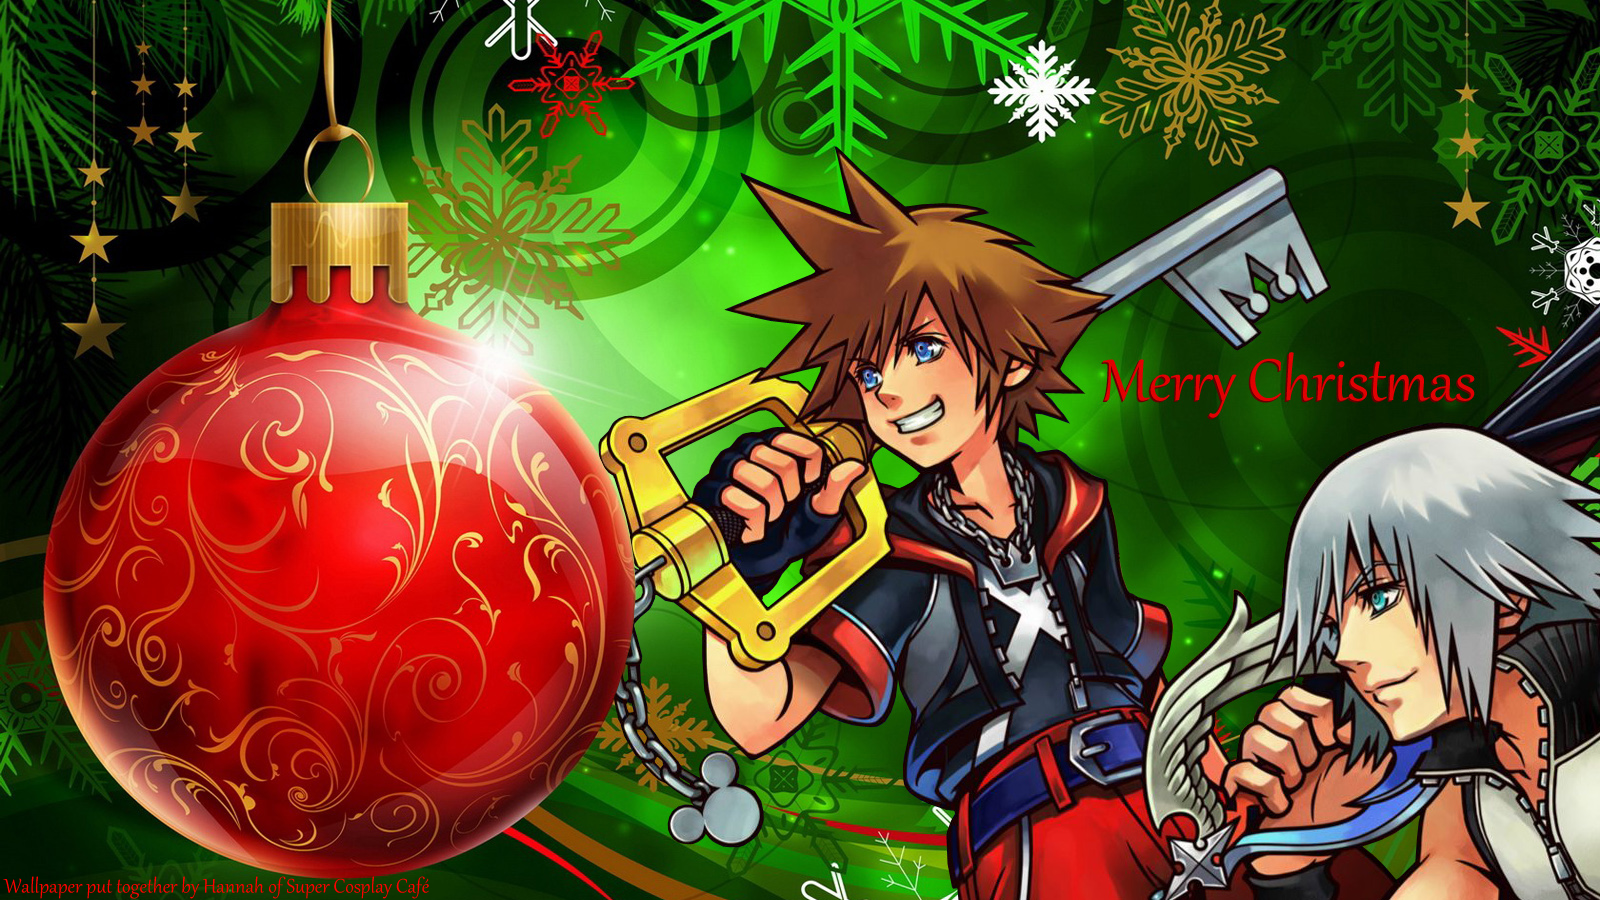 Kingdom Hearts Christmas wallpaper | Christmas! | Pinterest ...